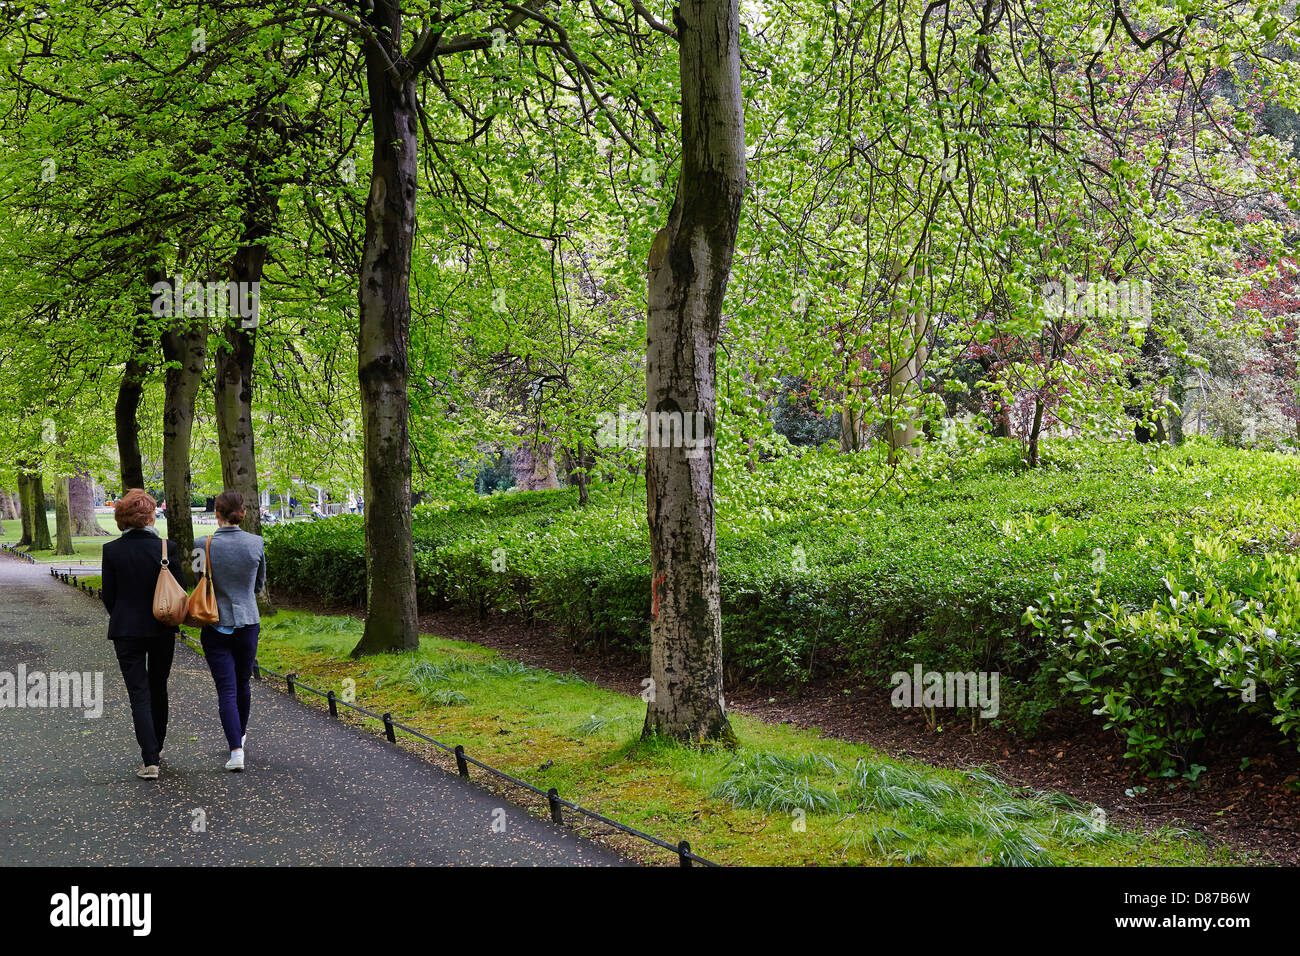 Two young people walk through the grounds of Saint Stephen's Green, Dublin, Republic of Ireland - Stock Image